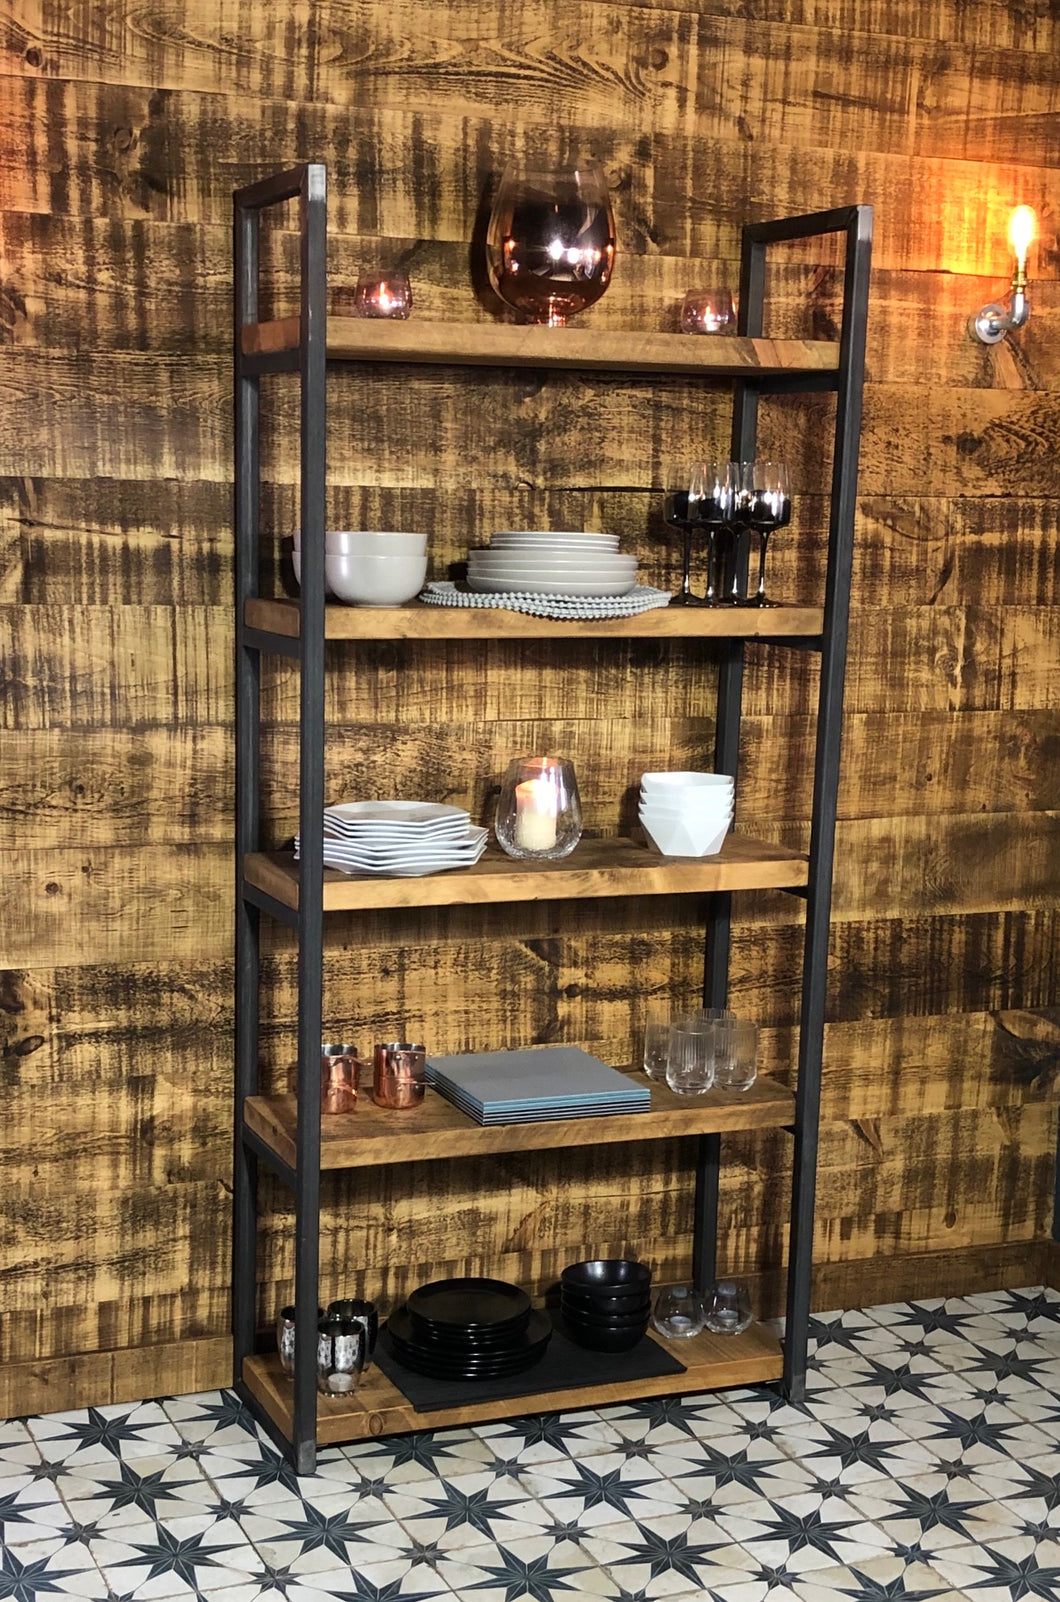 Rustic Free-Standing Shelving Unit